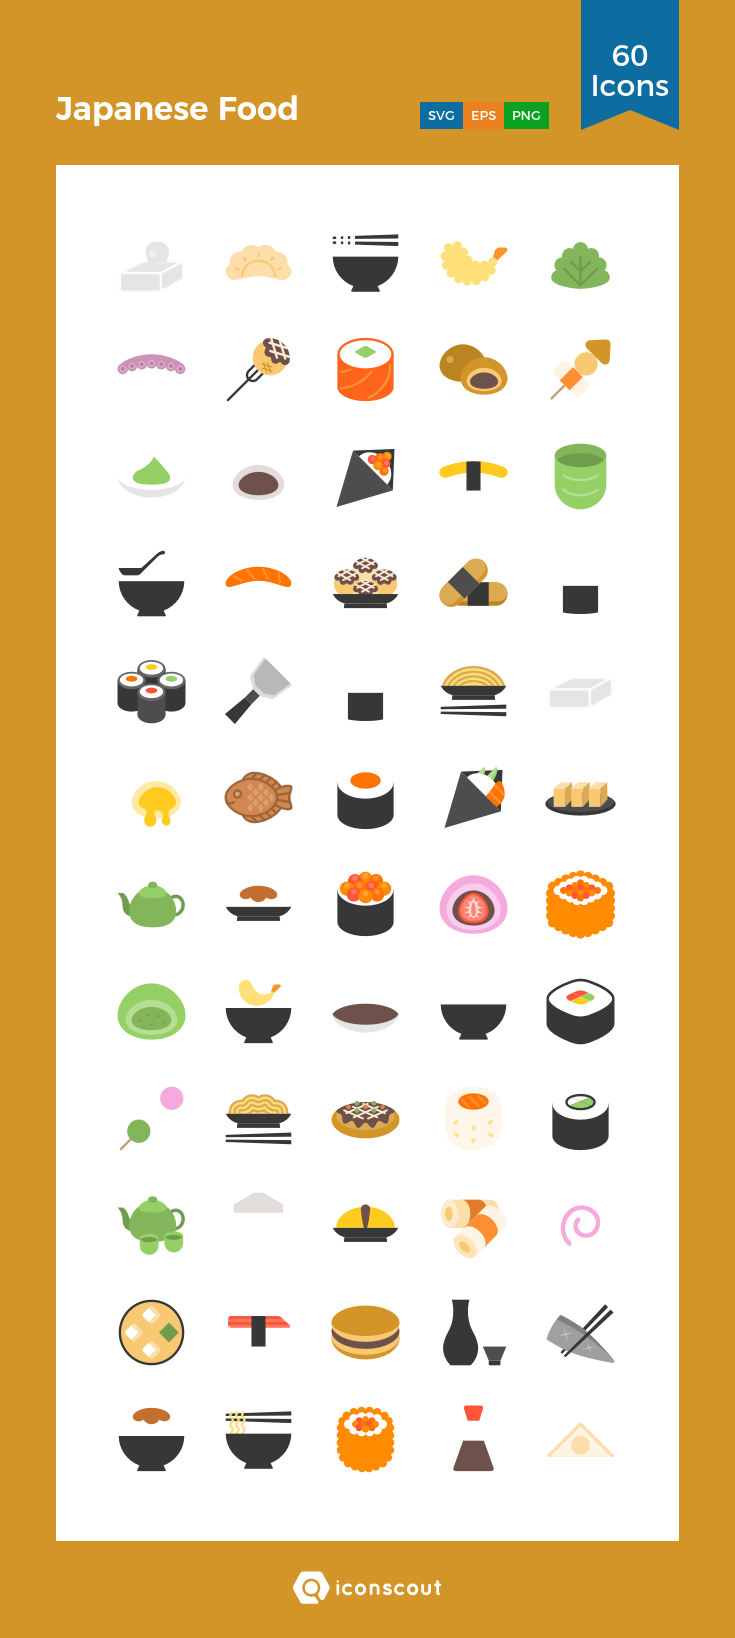 Japanese Food Icon Pack 60 Flat Icons